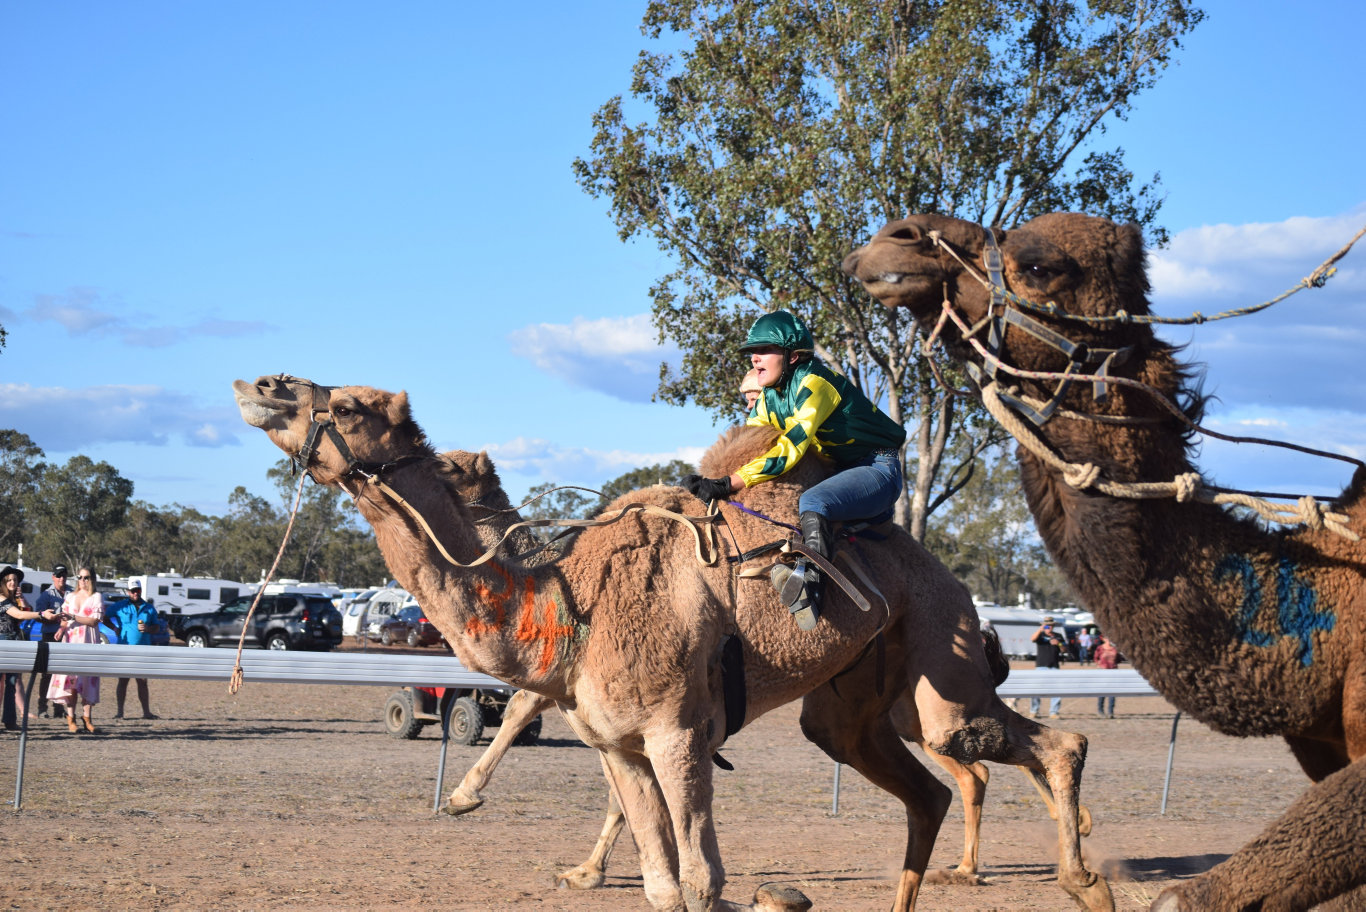 Action at the Tara Camel Races 03/08/2019